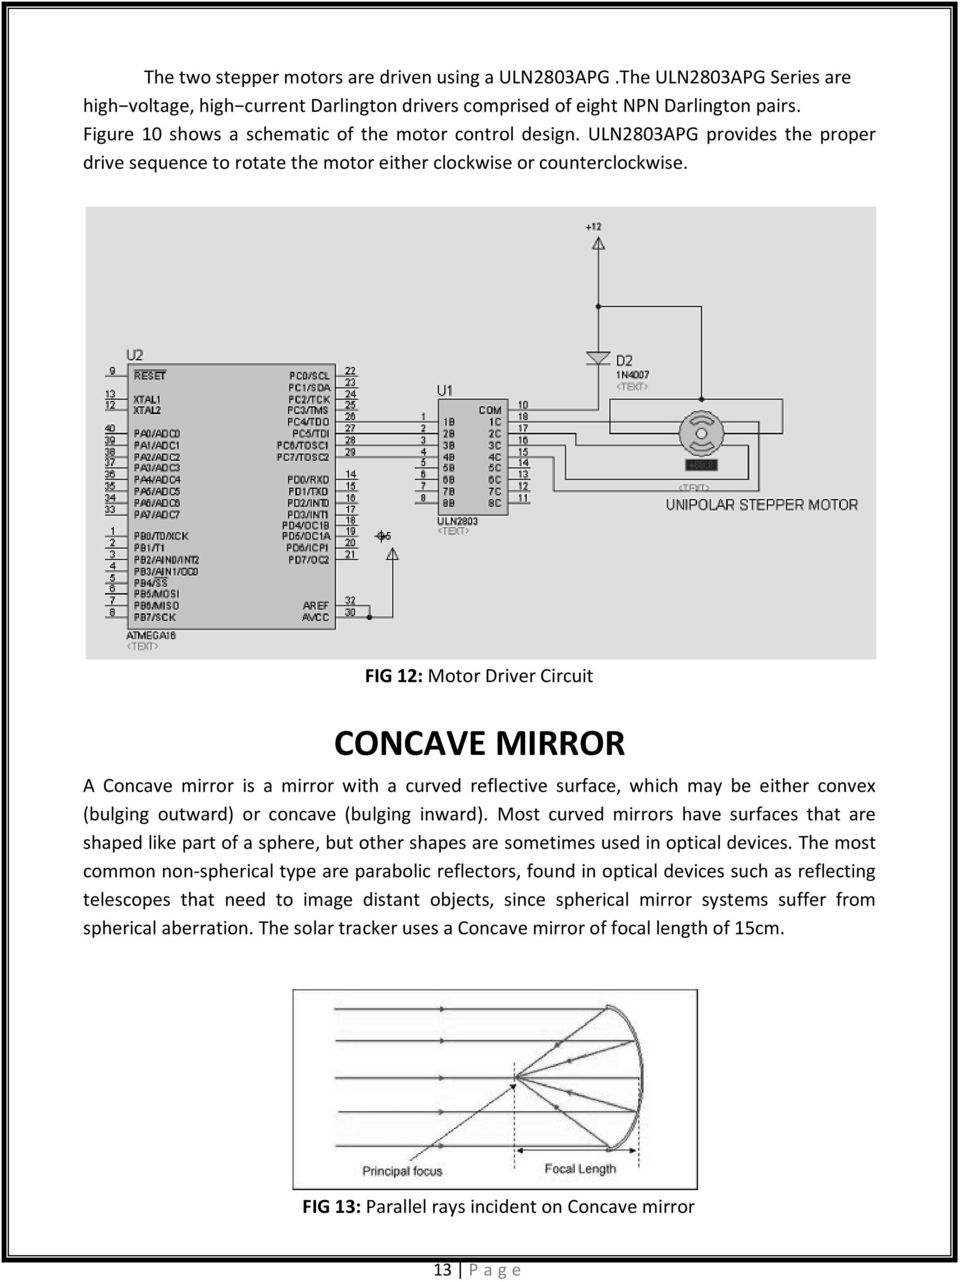 FIG 12: Motor Driver Circuit CONCAVE MIRROR A Concave mirror is a mirror with a curved reflective surface, which may be either convex (bulging outward) or concave (bulging inward).